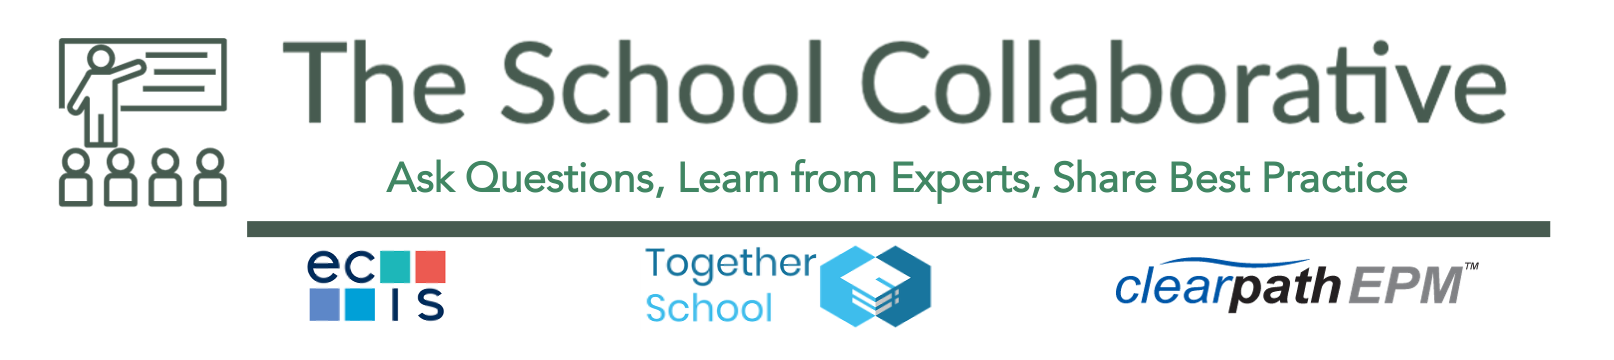 The School Collaborative